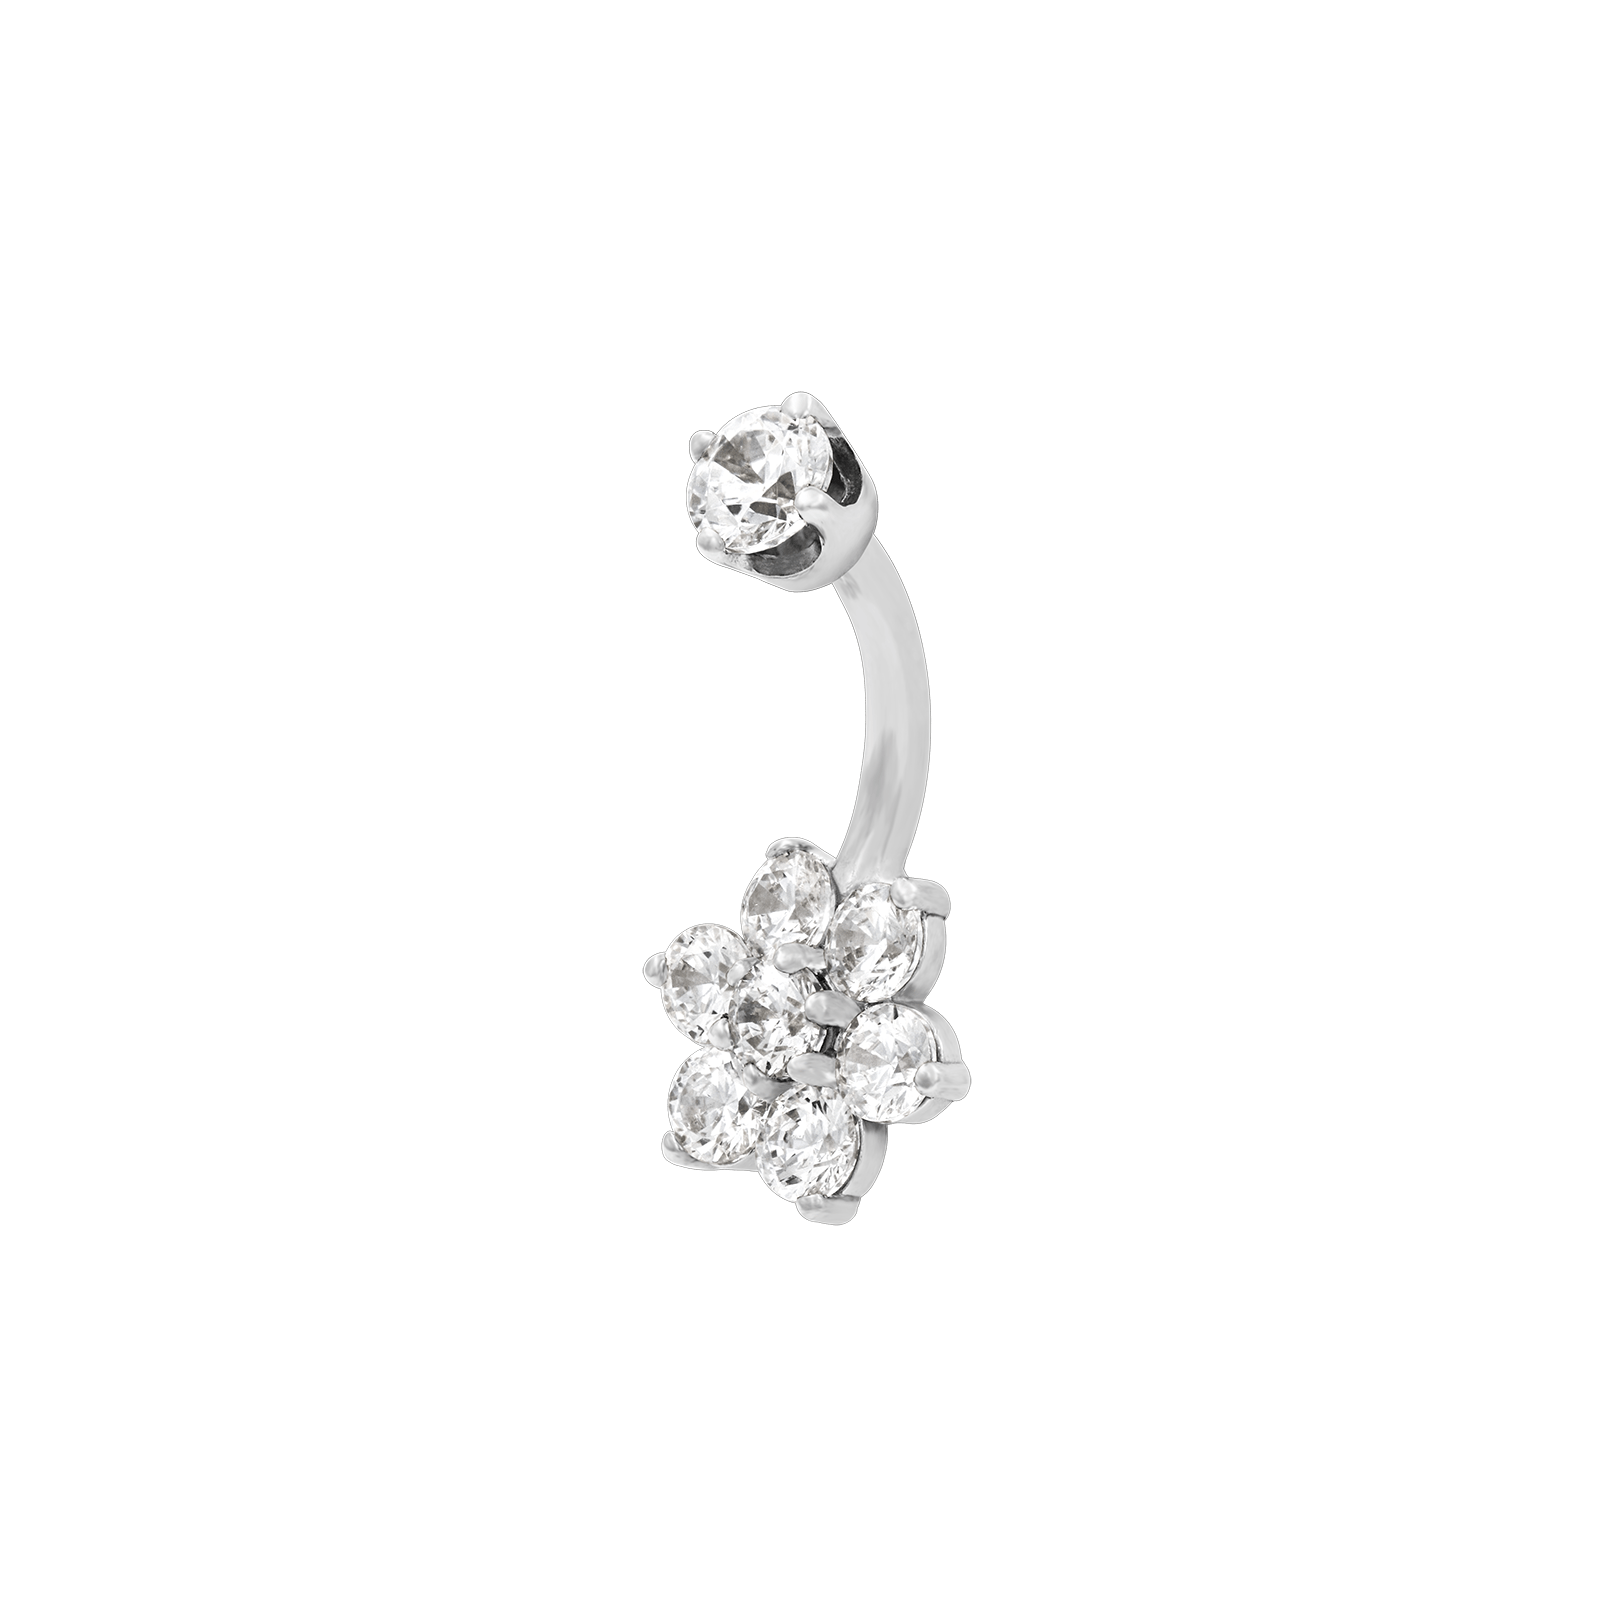 Flower CZ Navel Bar in 14k White Gold by LeRoi - Pierced